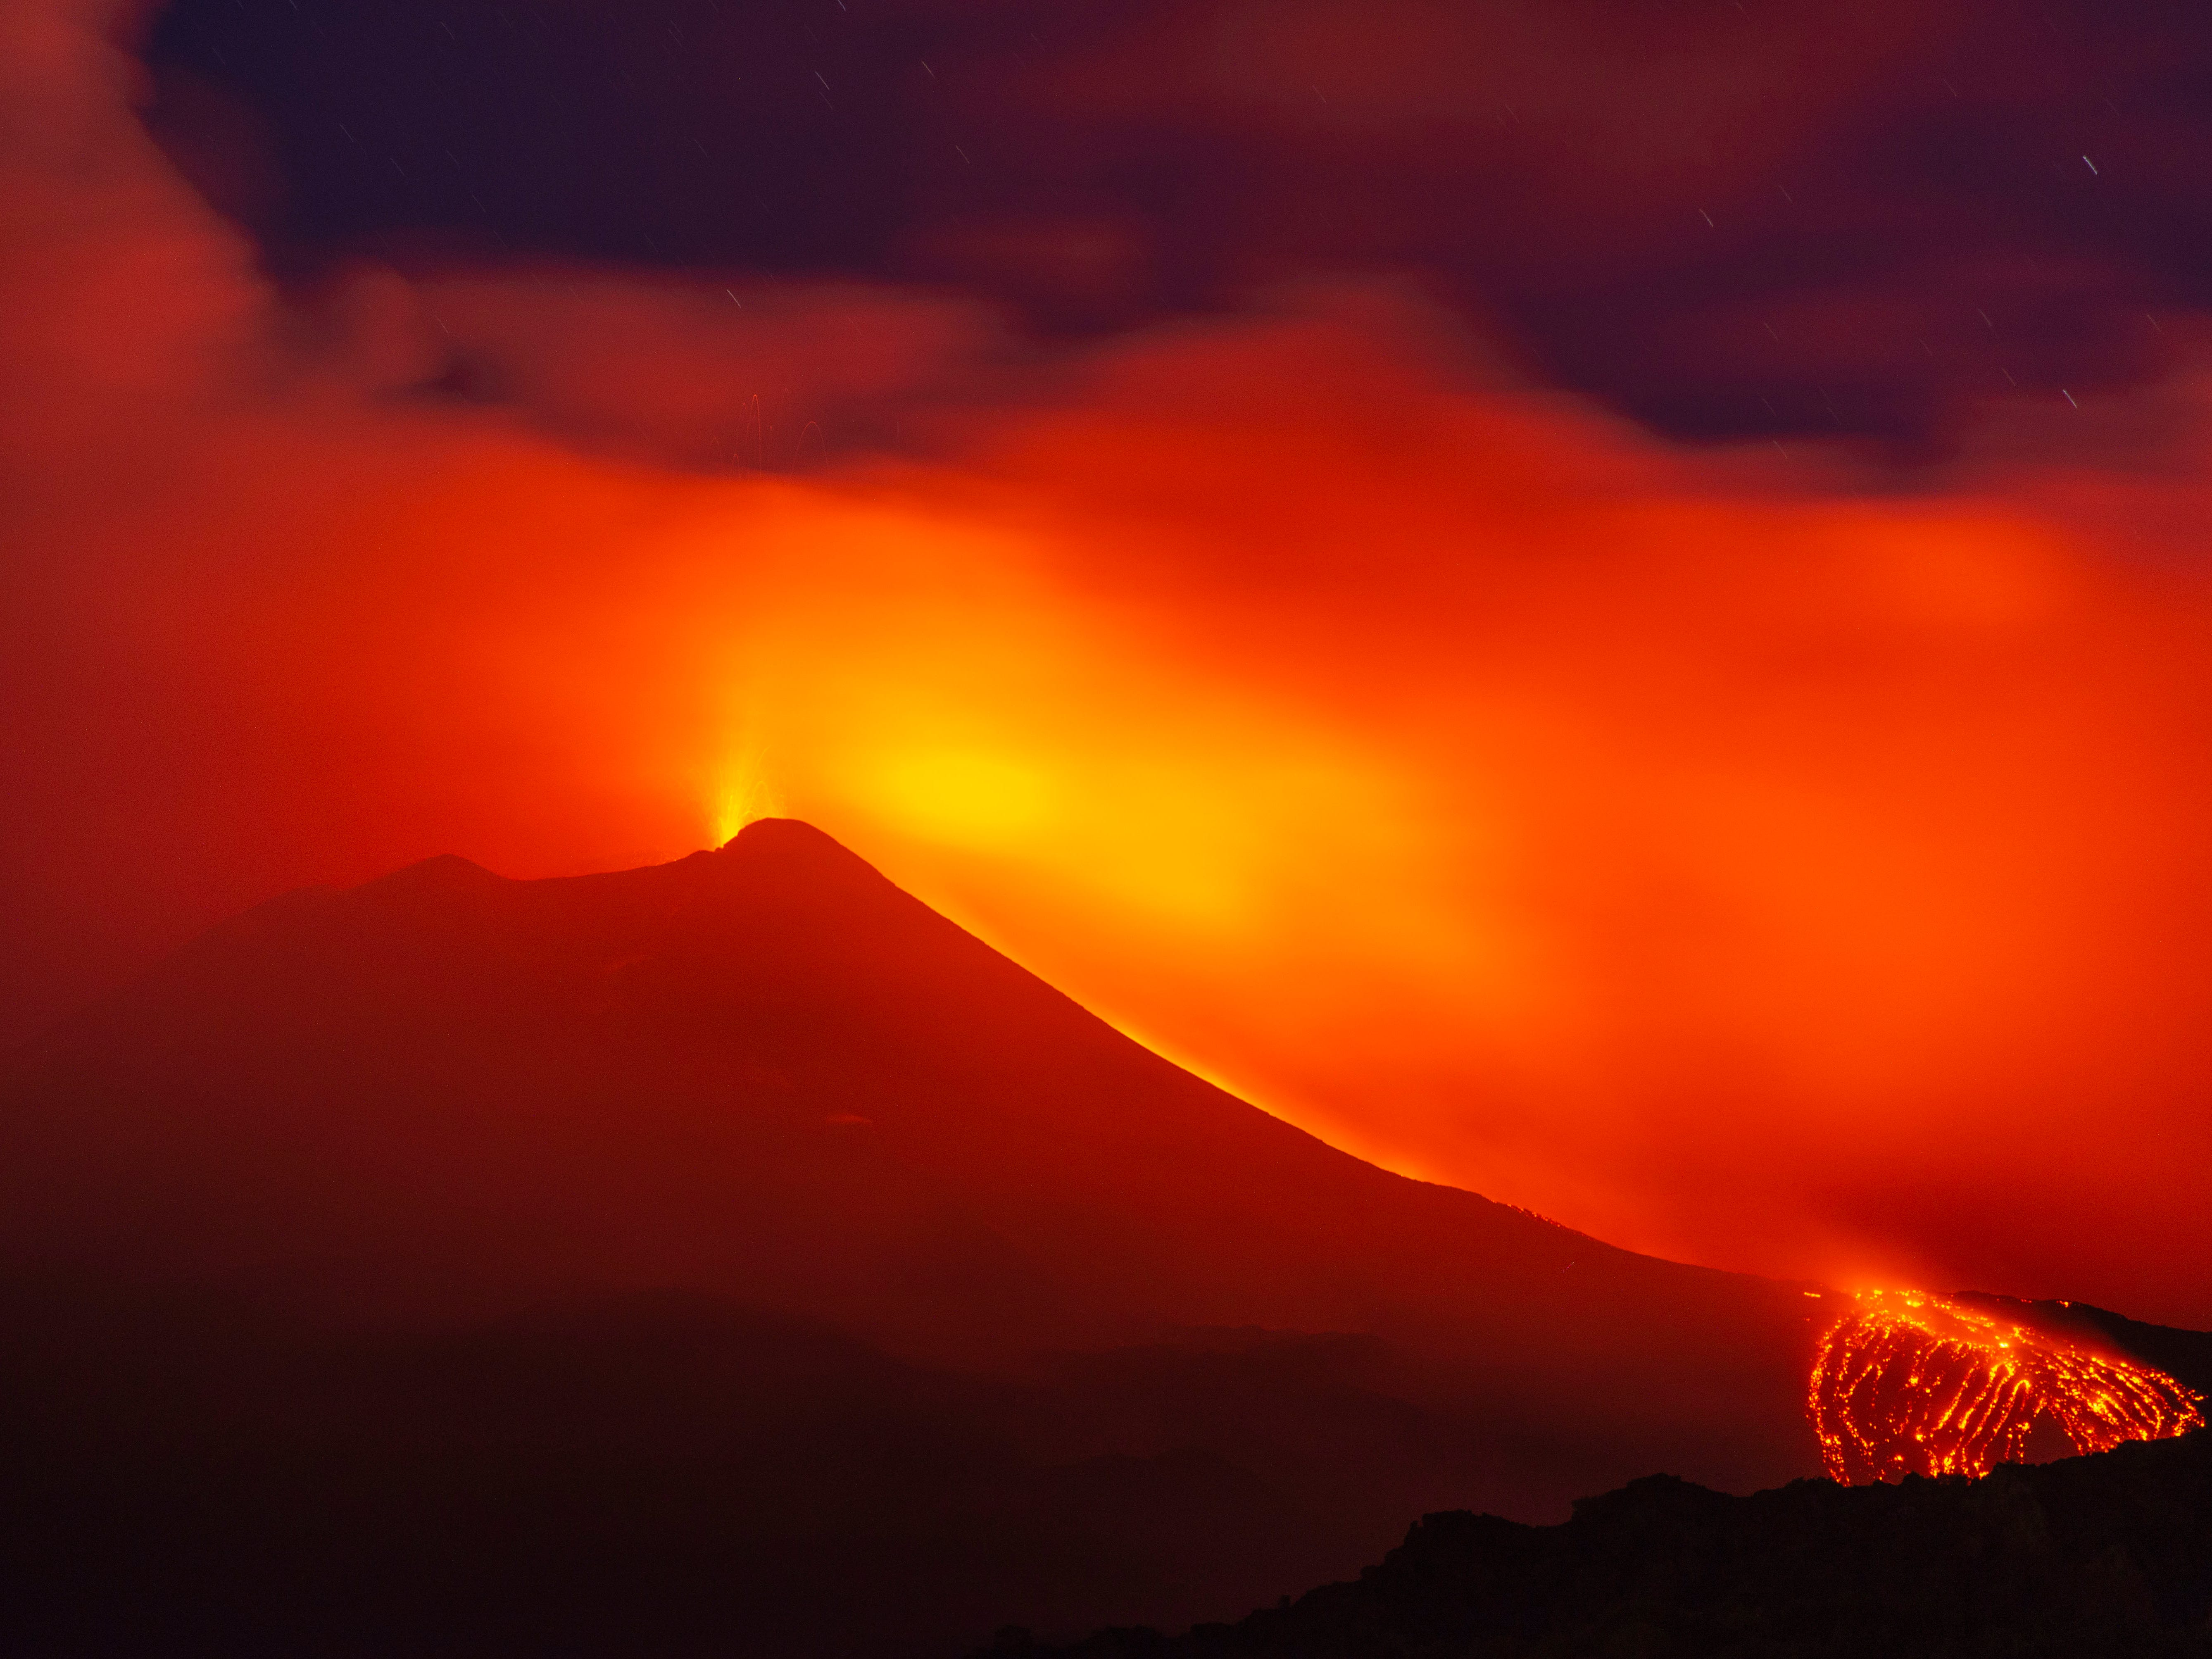 """Aug. 25, 2018: Mount Etna volcano spews lava during an eruption early.  Mount Etna in Sicily has roared back into spectacular volcanic action, sending up plumes of ash and spewing lava. Italy's National Institute of Geophysics and Vulcanology (INGV) says that the volcano, which initially """"re-awoke"""" in late July, sprang into fuller action  by shooting up chunks of flaming lava as high as 500 feet almost constantly."""